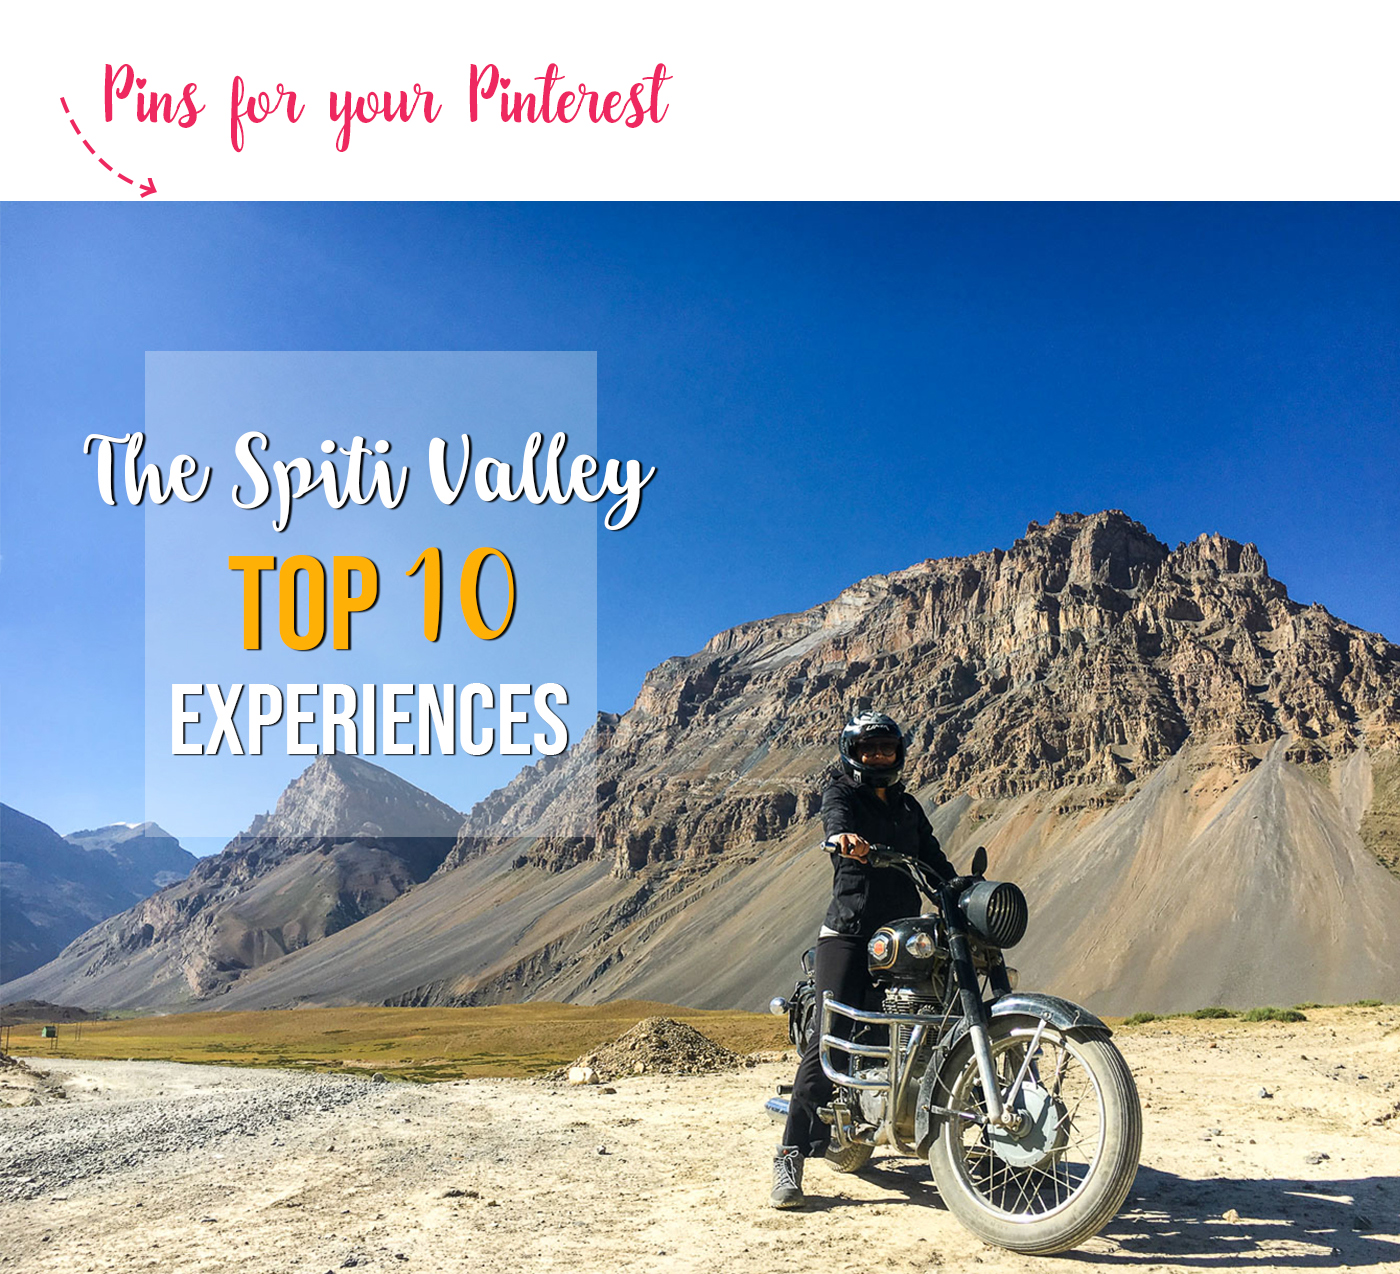 Spiti_Valley_Himachal_Pradesh_India_Kinnaur_Kullu_Manali_Road_trip_mountains_winter_Buddhist_Monastry_Sassy_Pilgrim_Travel_Blog_female_Blogger_Professional_Solo_Tips